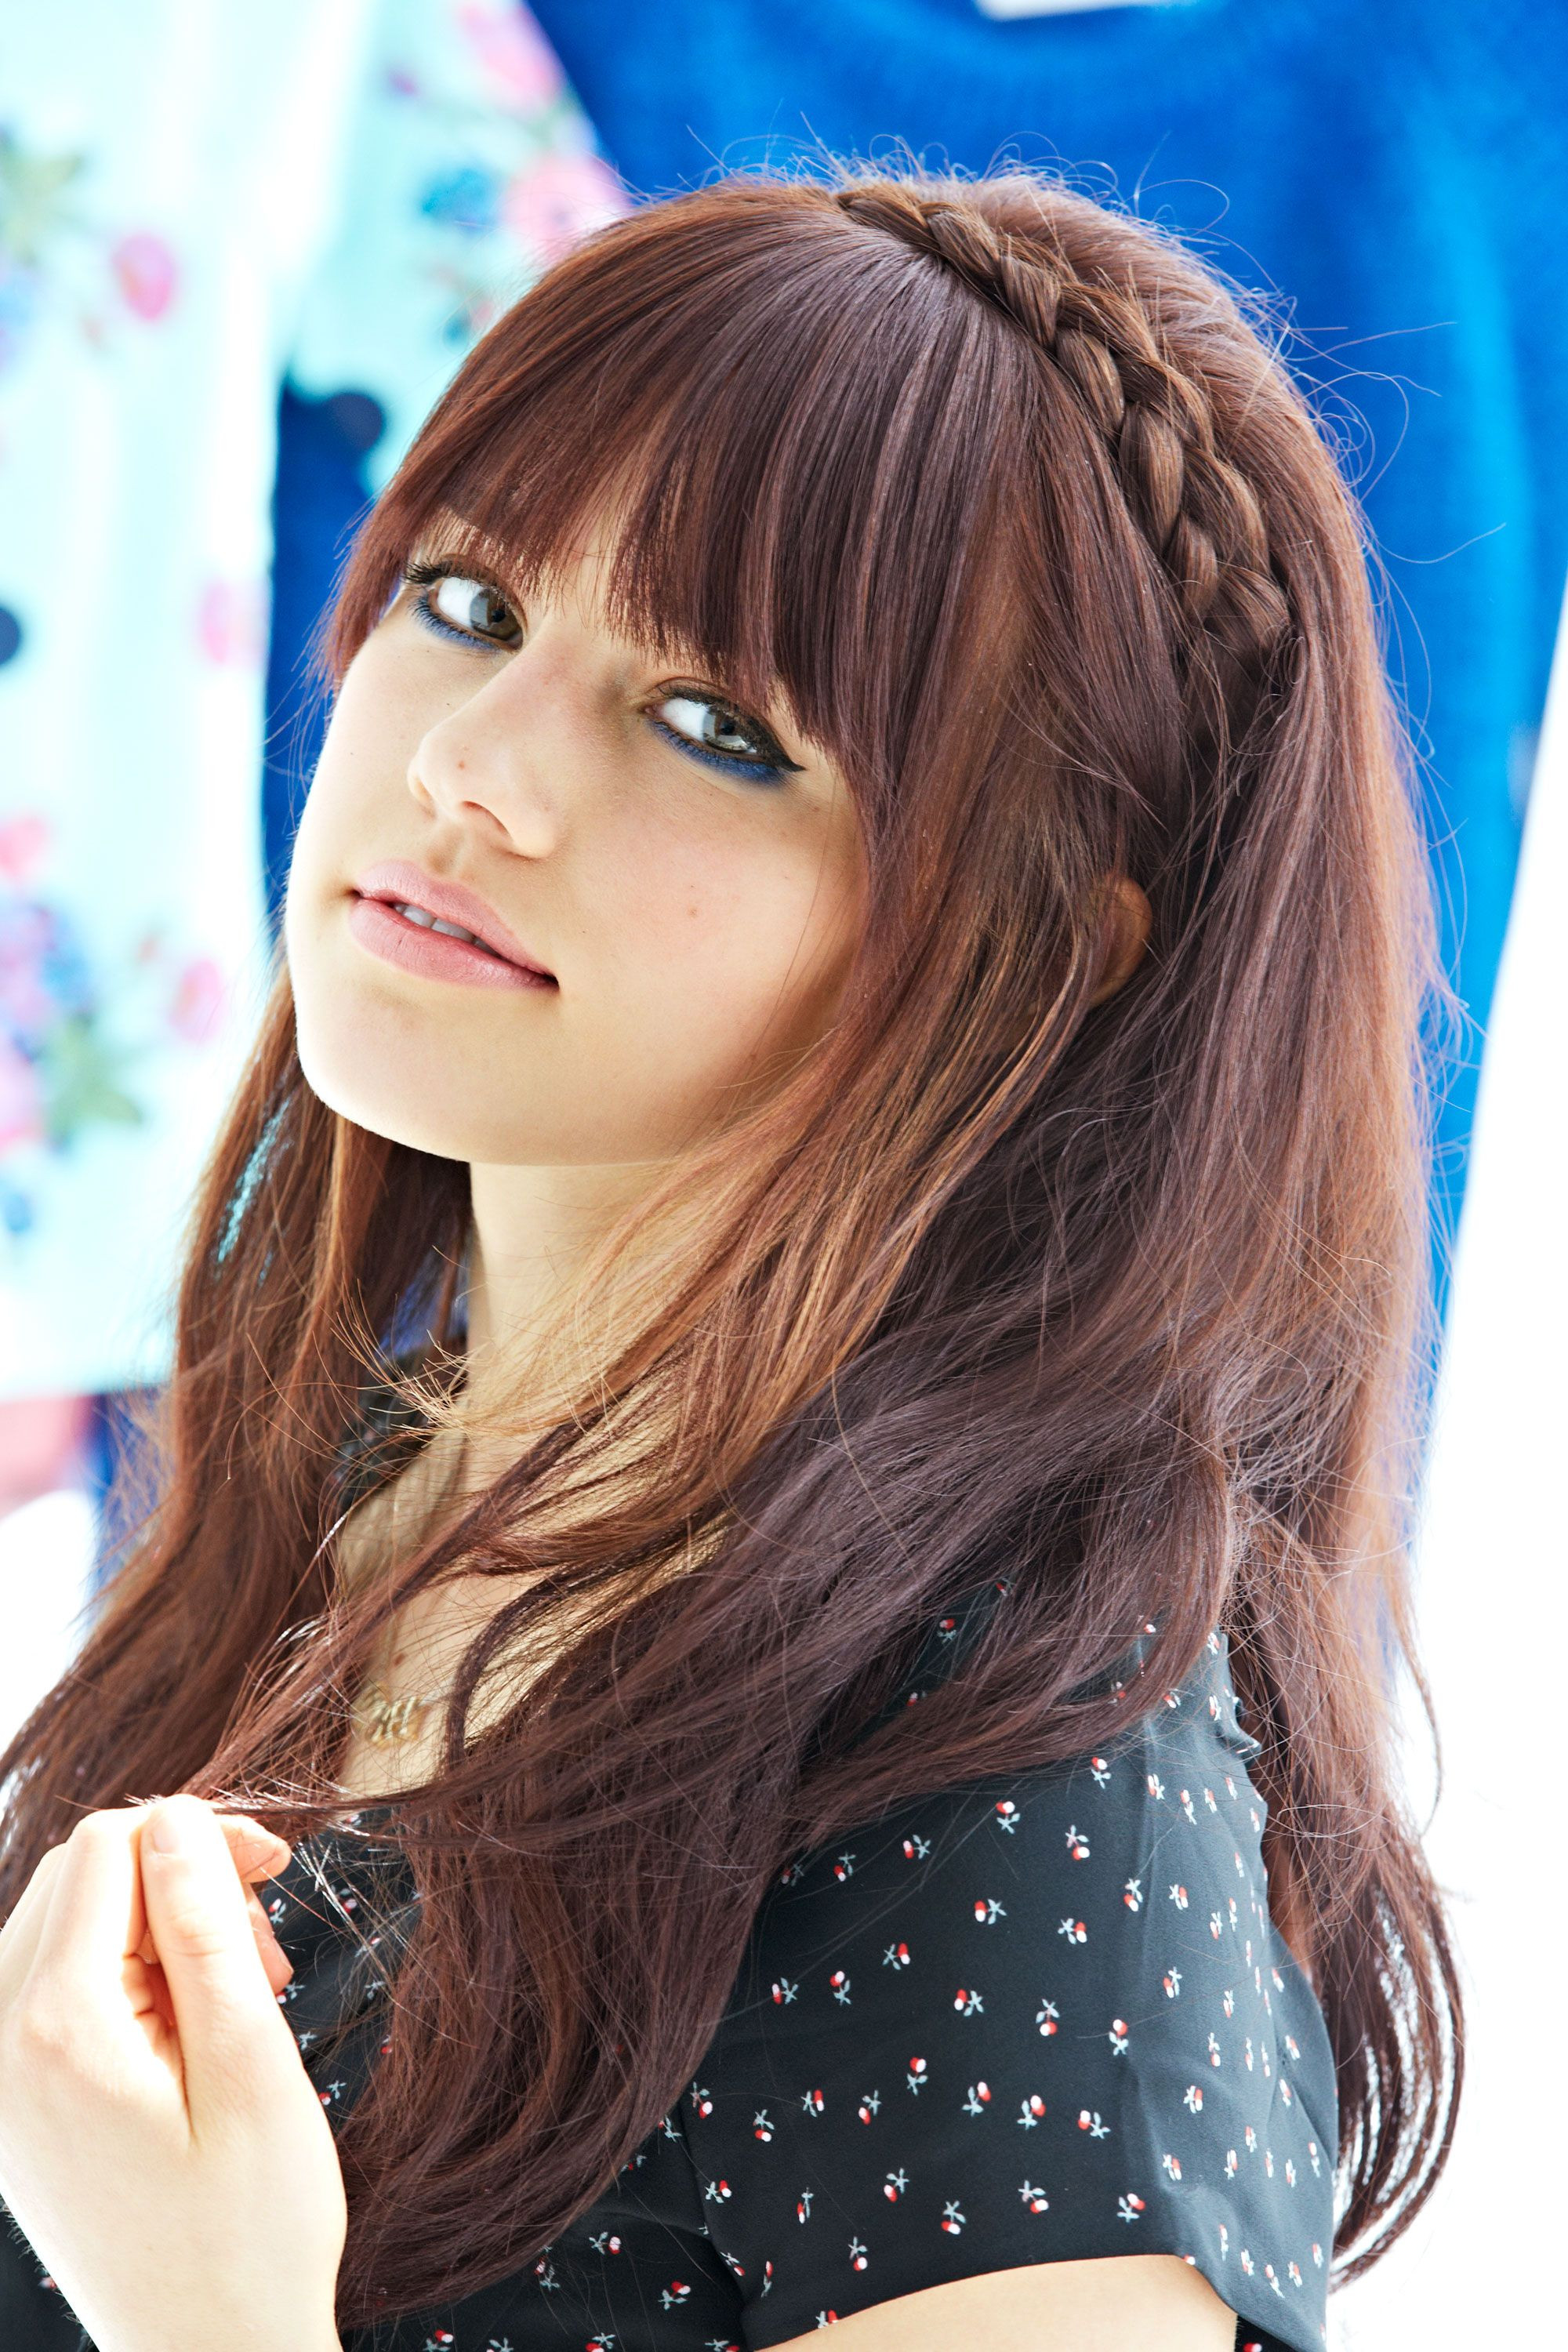 Best ideas about Girls Haircuts With Bangs . Save or Pin 9 Cute AF Hairstyles Every Girl With Bangs Should Know Now.